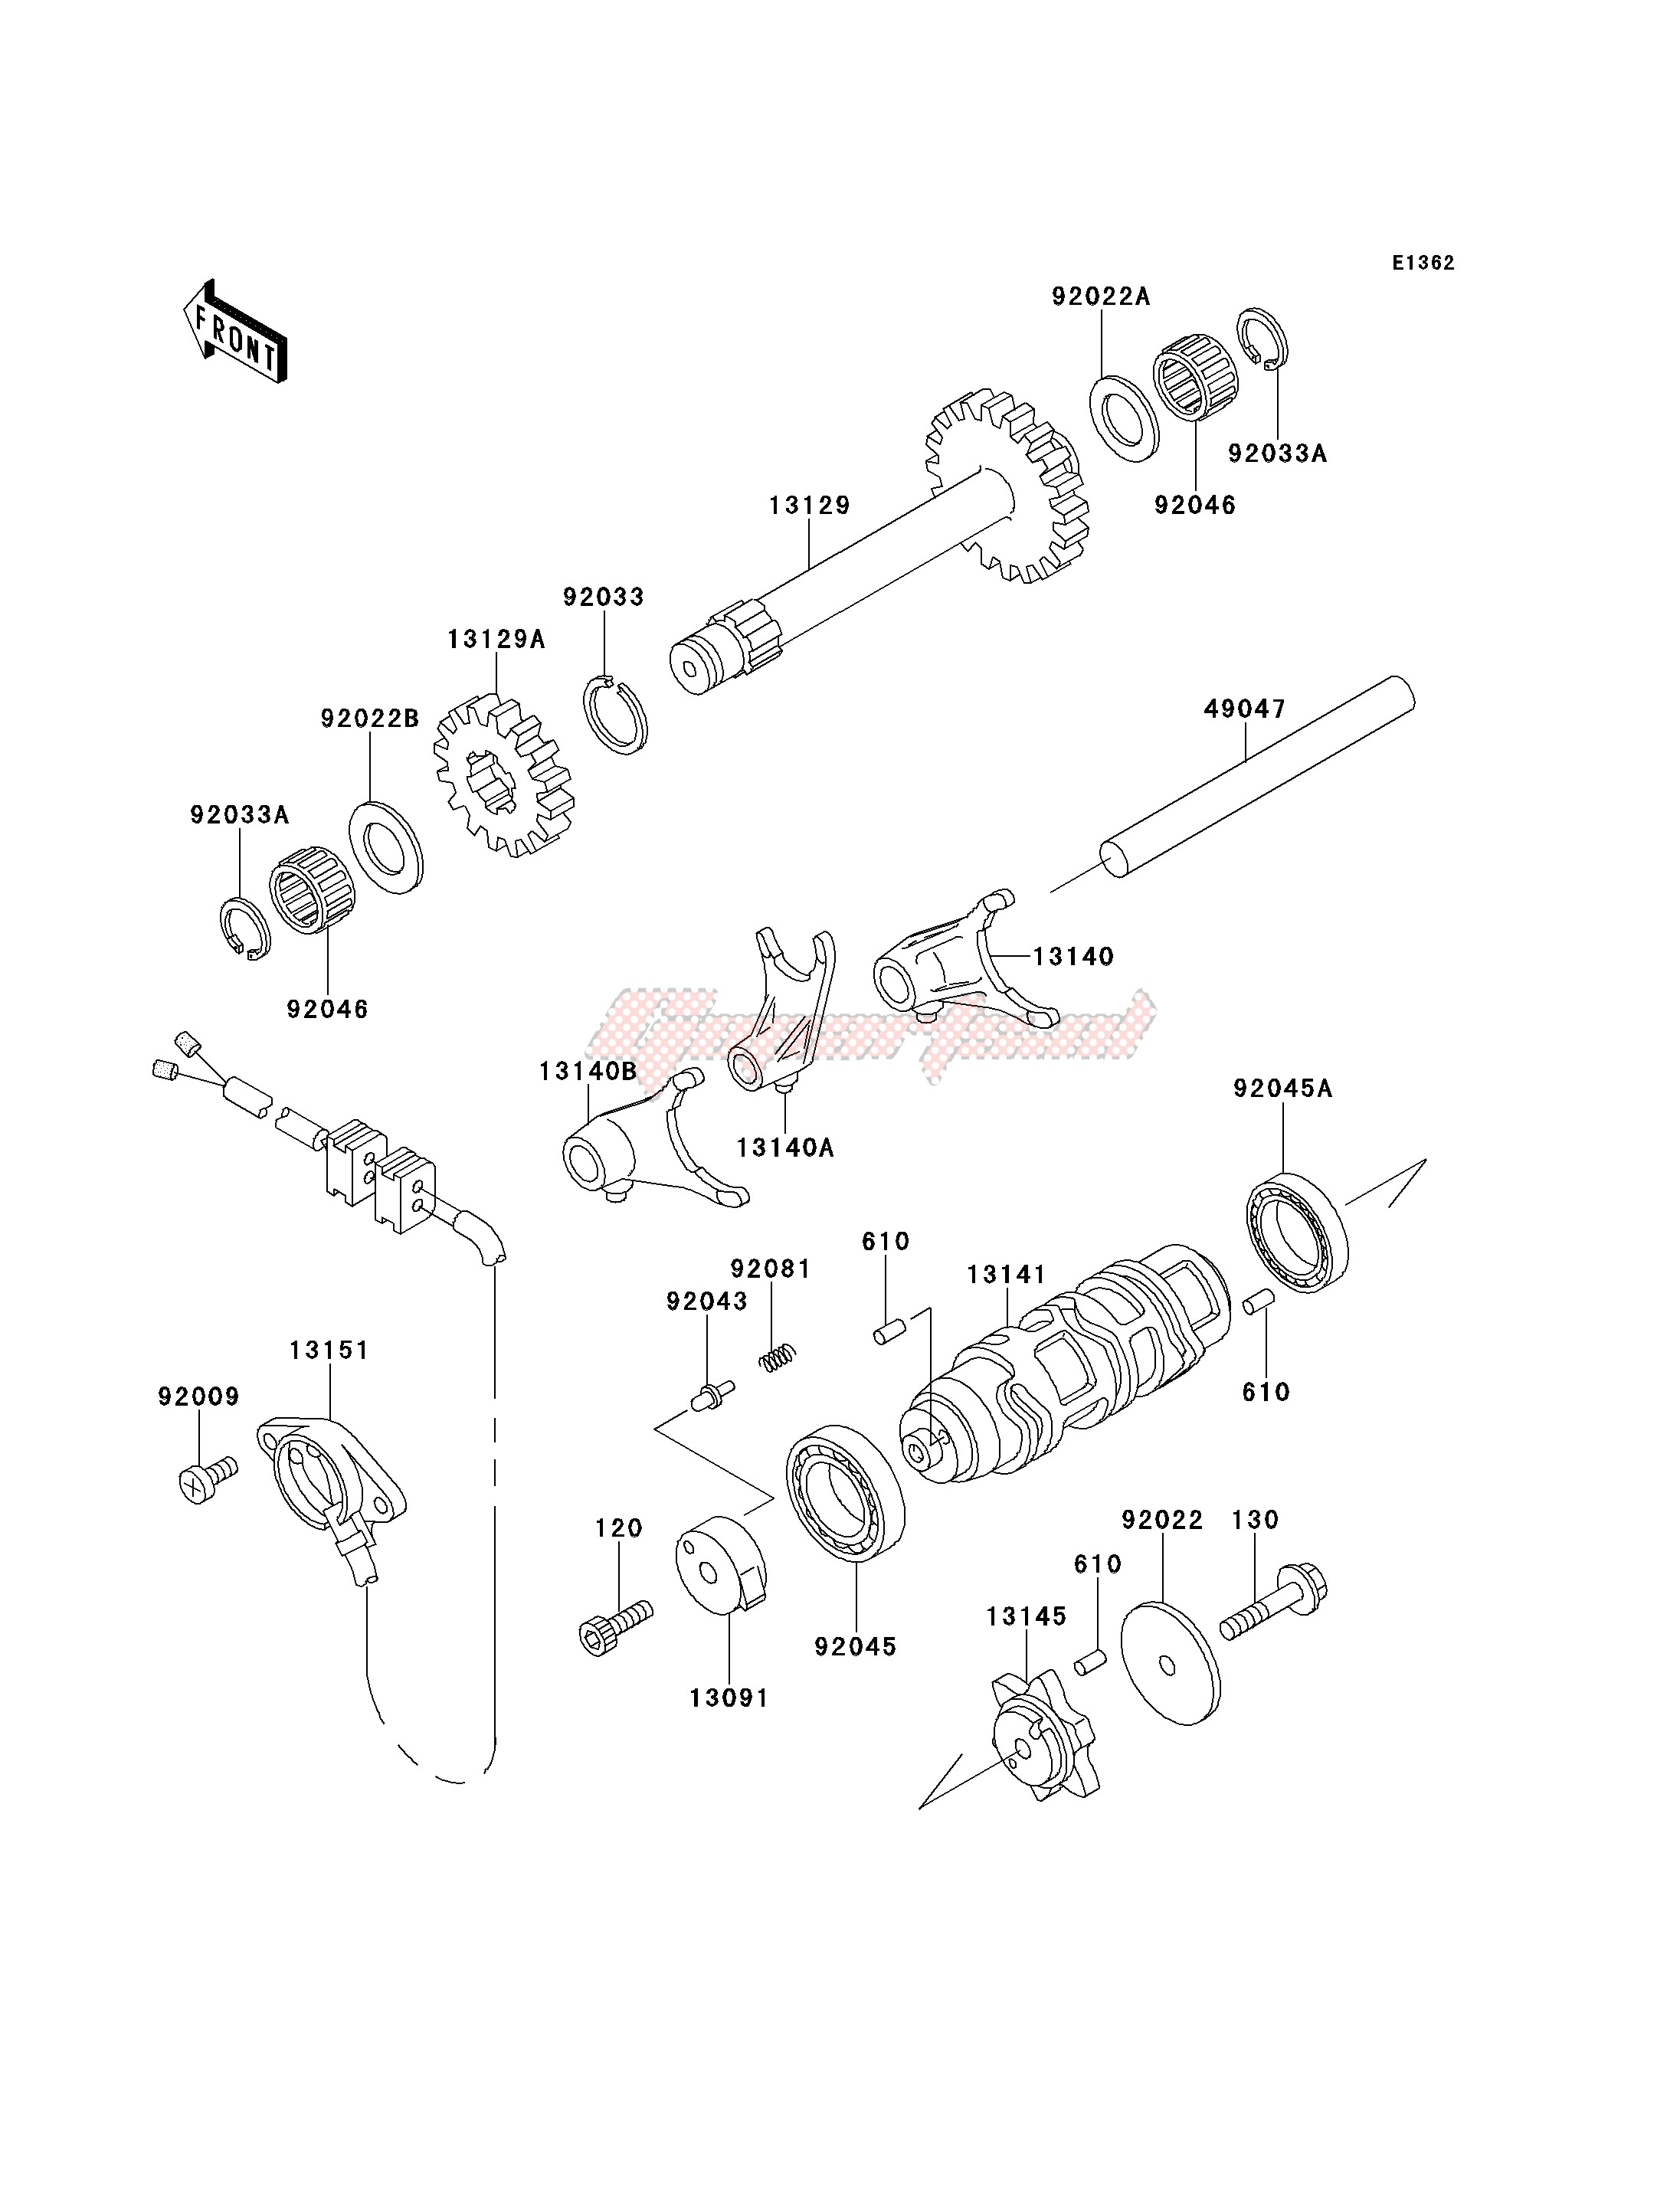 GEAR CHANGE DRUM_SHIFT FORK-- S- - image